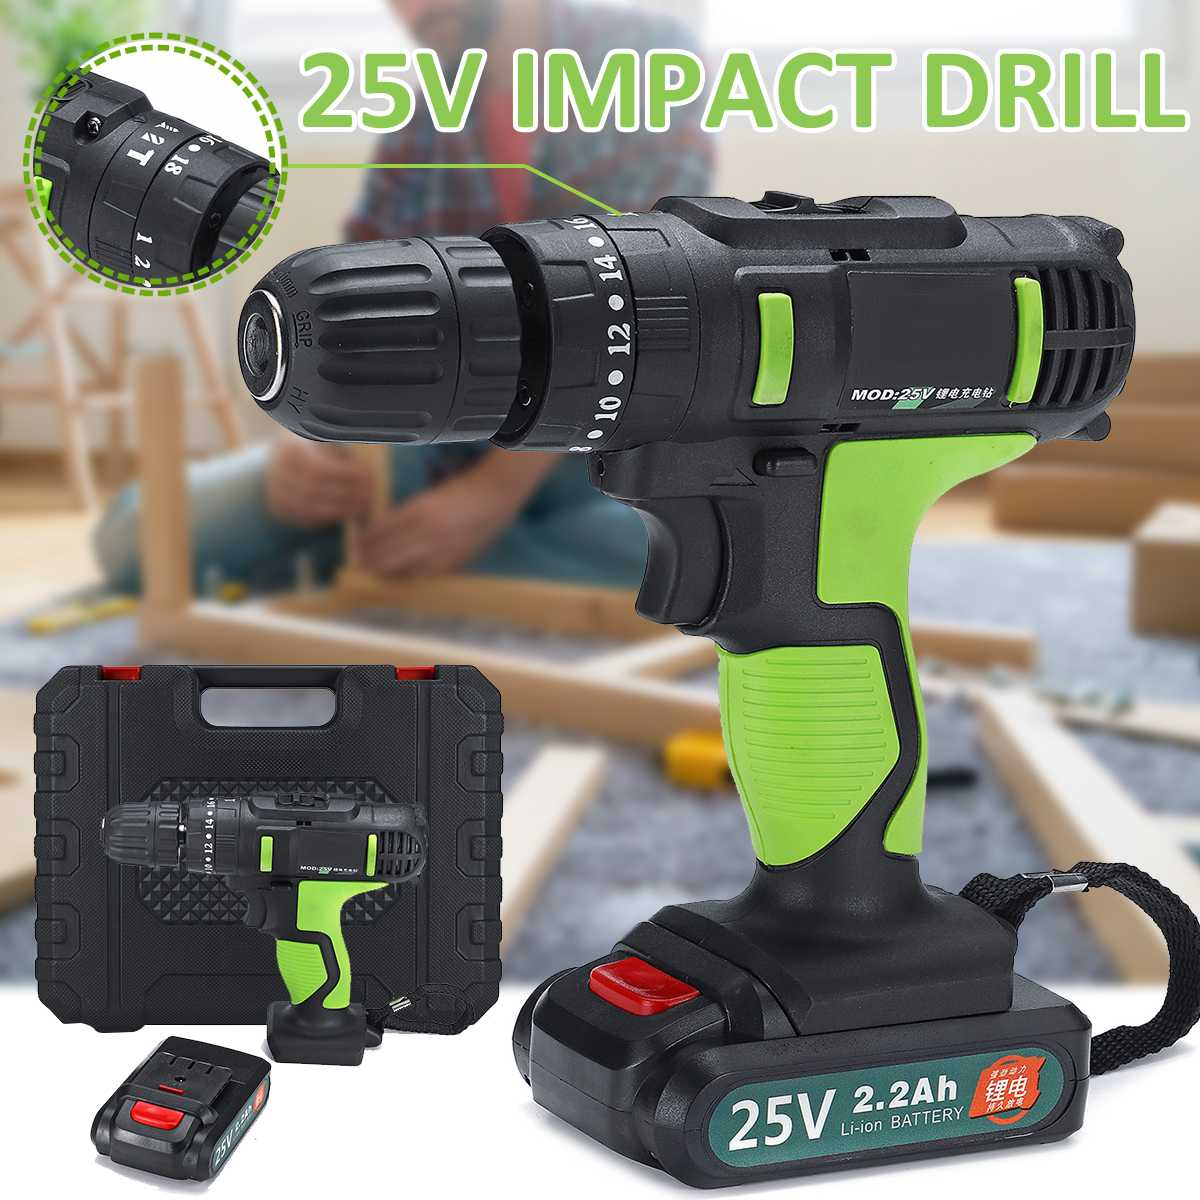 25V 2-Speed Cordless Electric Drill 220v Impact Drills 3/8 Driver Rechargable Drill Screwdriver 1 or 2 Batteries Power Tool spta 4 100mm genuine wool buffing ball polishing pad ball hex shank turn power drill or impact driver high speed polisher